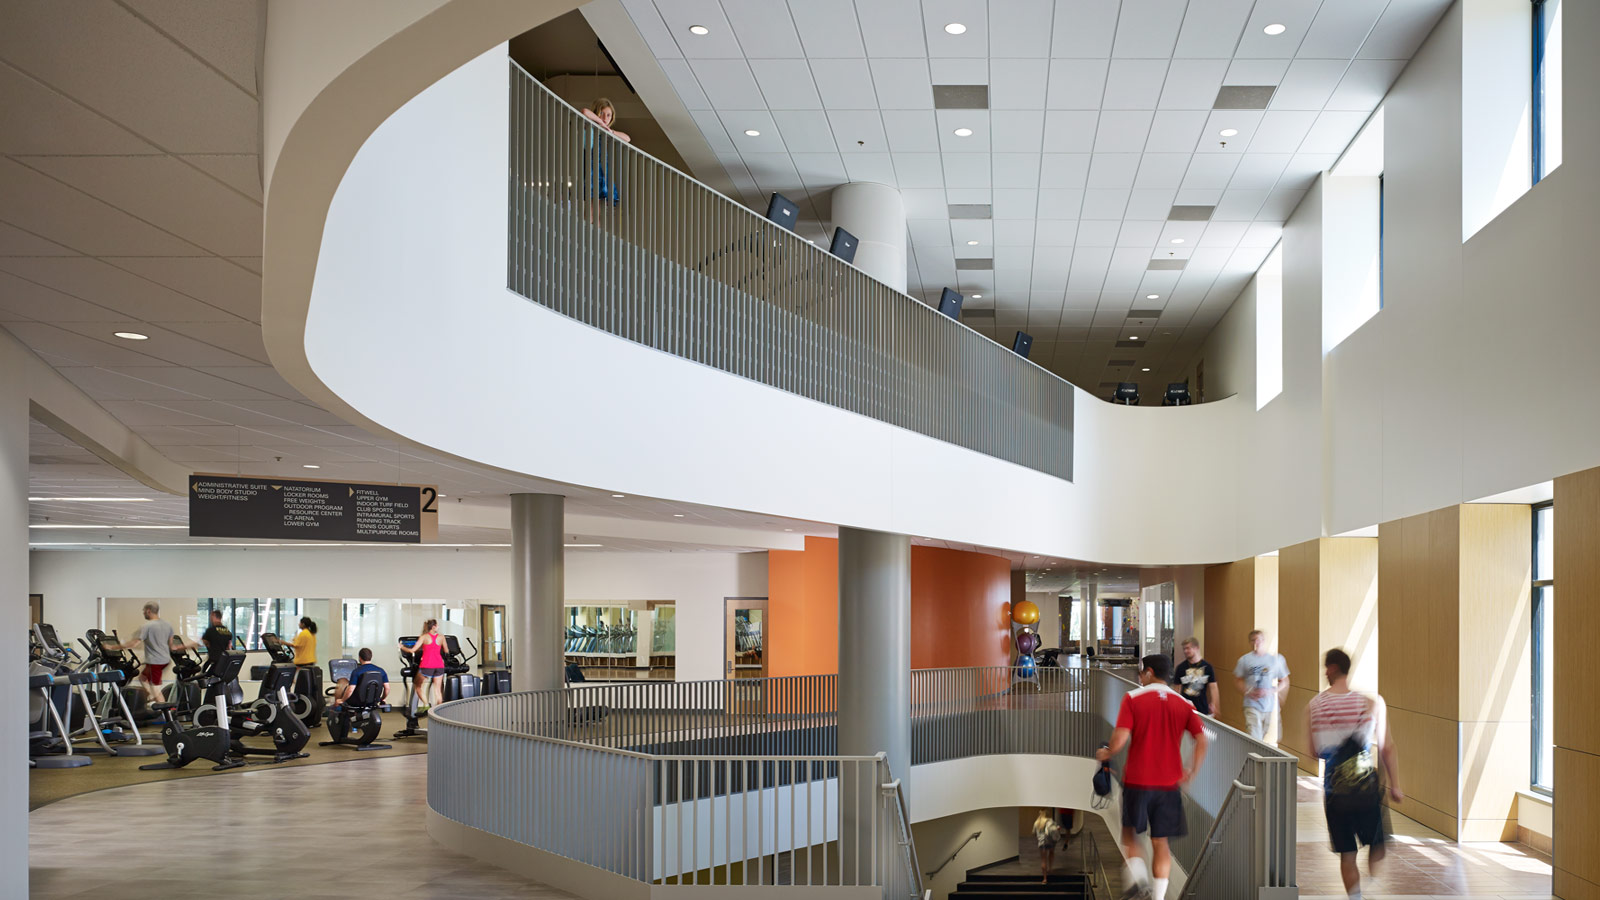 University Of Colorado Boulder Recreation Center Expansion Renovation